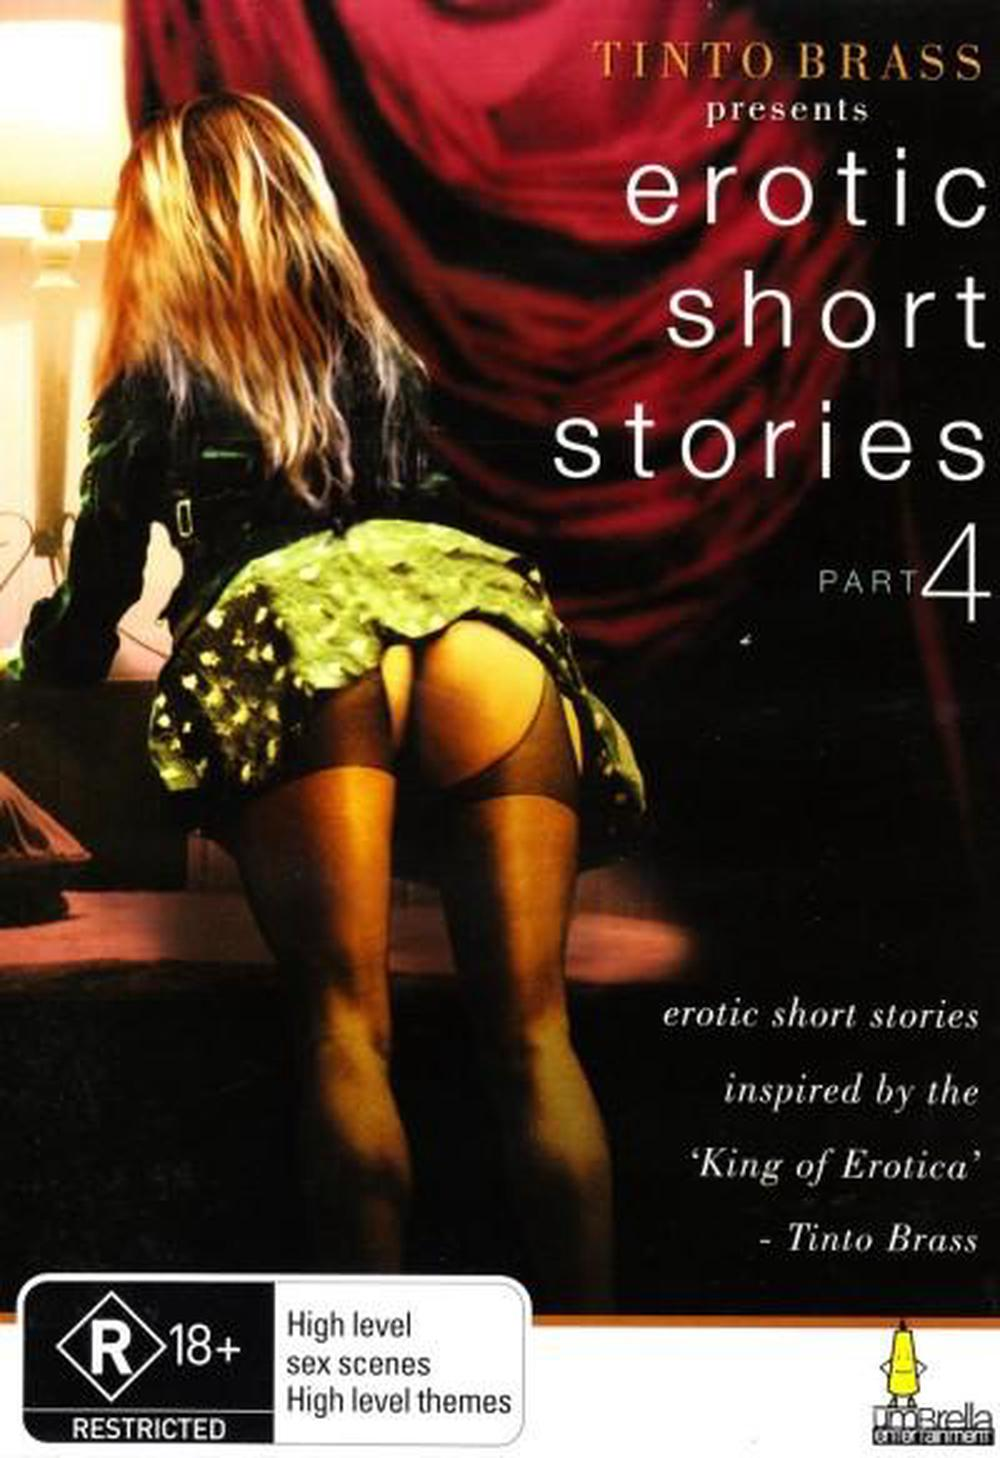 Interesting question very erotic short stories the expert